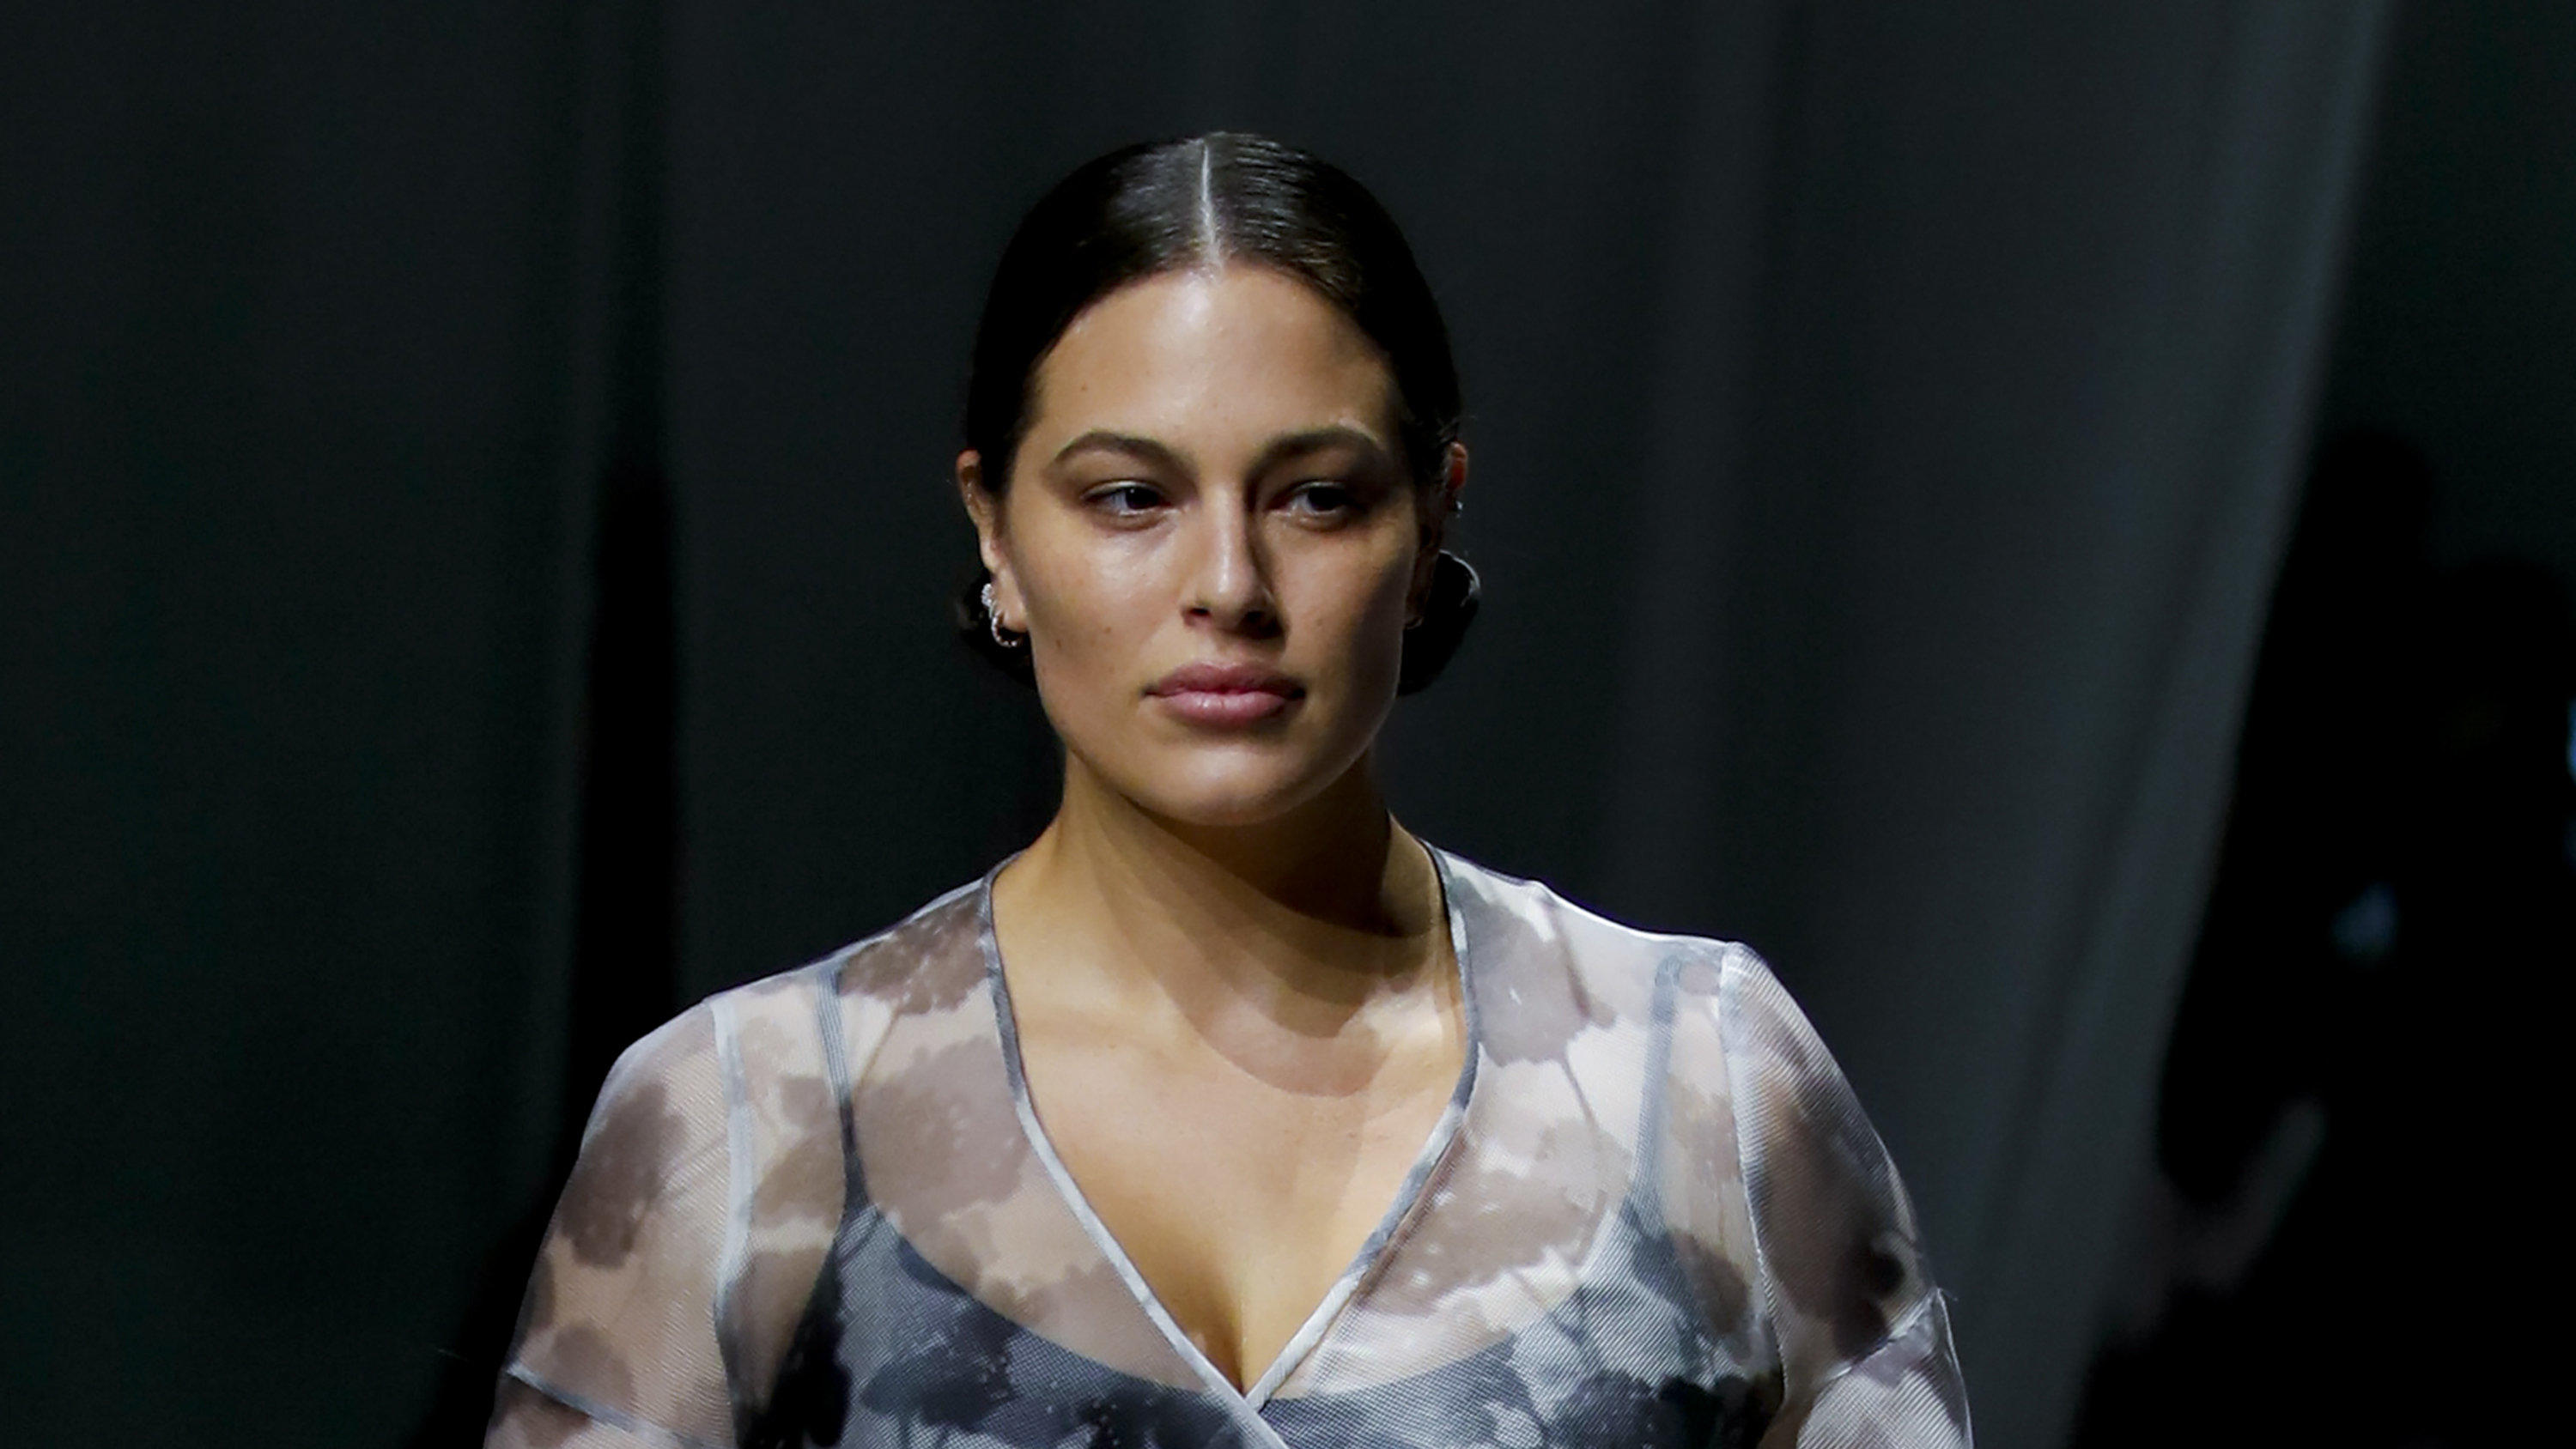 Model Ashley Graham wears a creation as part of the Fendi 2021 women's spring-summer ready-to-wear collection during the Milan's fashion week in Milan, Italy, Wednesday, Sept. 23, 2020. (AP Photo/Antonio Calanni)